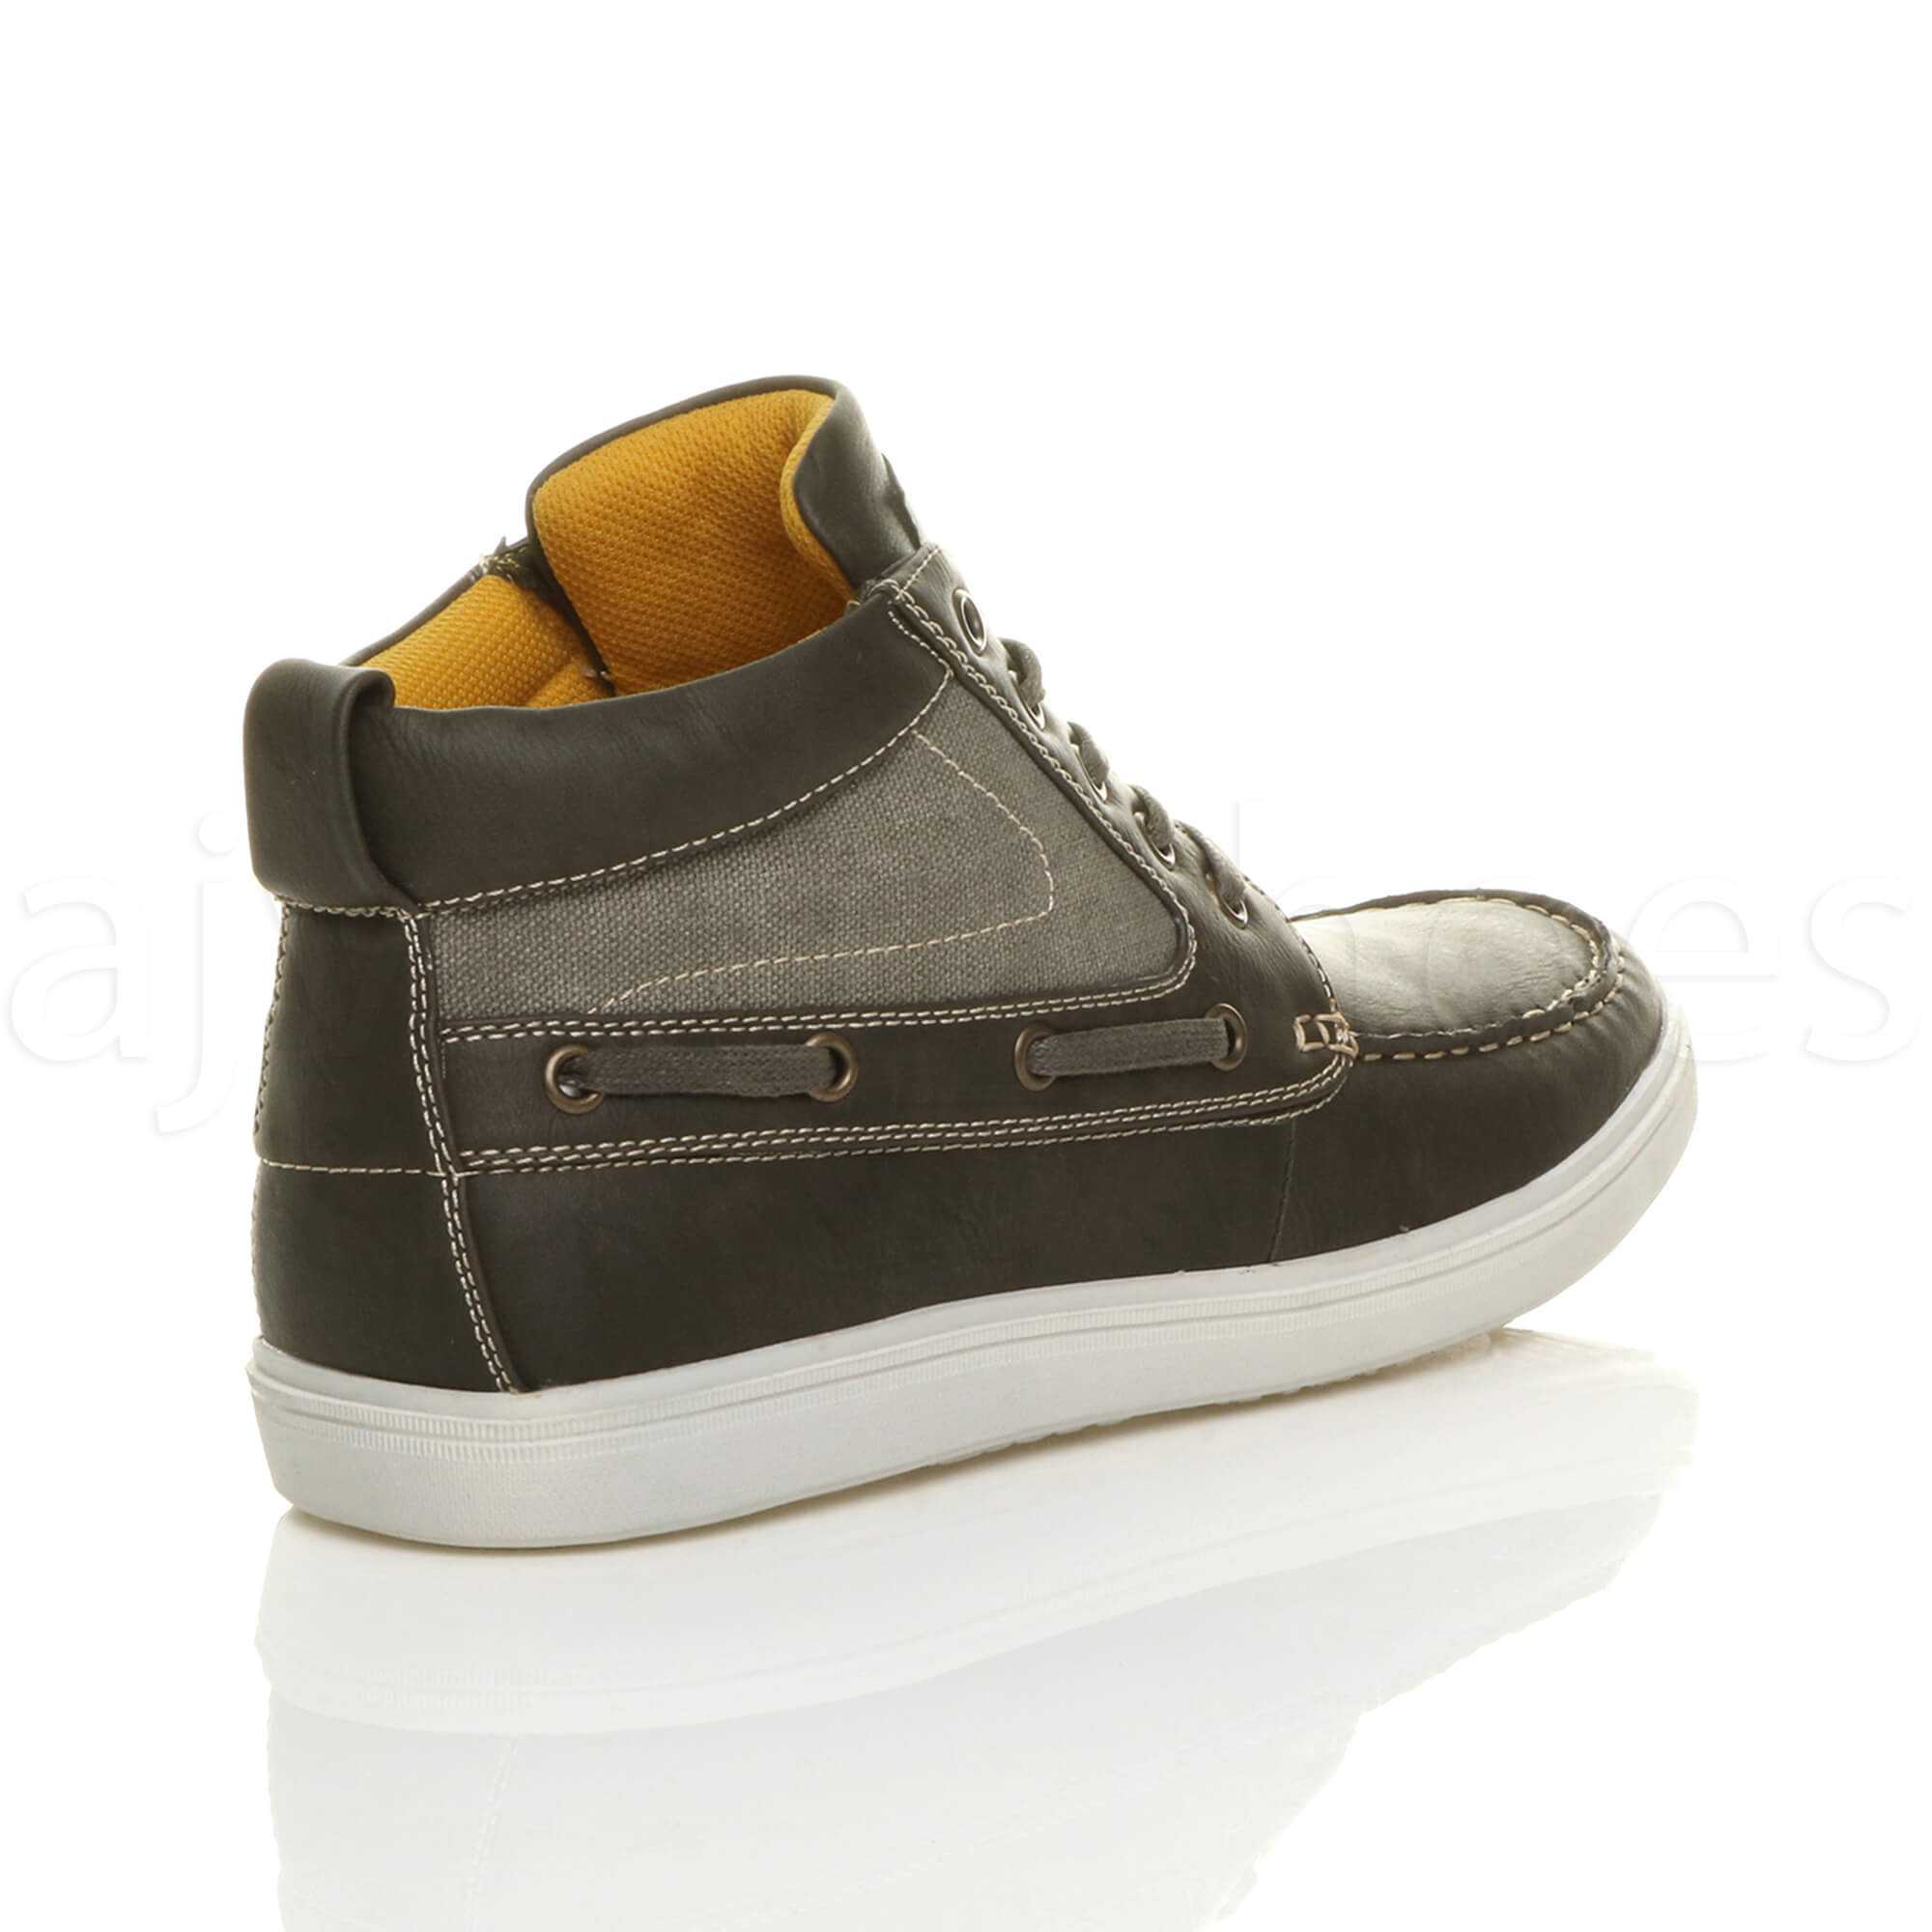 MENS-FLAT-LACE-UP-CASUAL-BOAT-CONTRAST-HI-TOP-TRAINERS-ANKLE-BOOTS-PUMPS-SIZE thumbnail 19